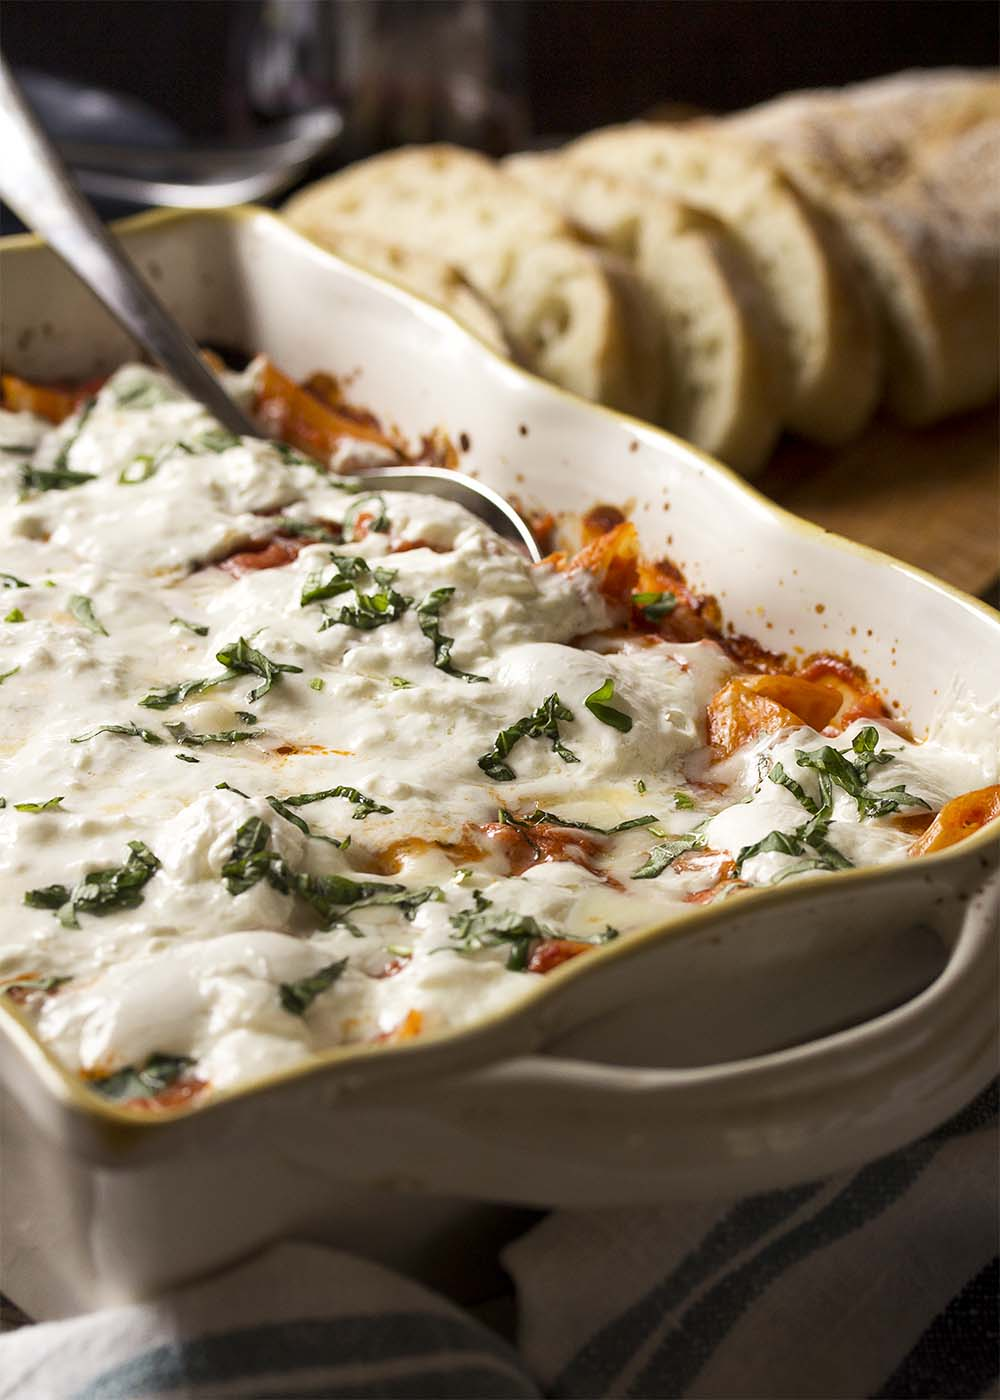 Casserole dish of vegetarian baked penne topped with melted buratta and sliced basil.